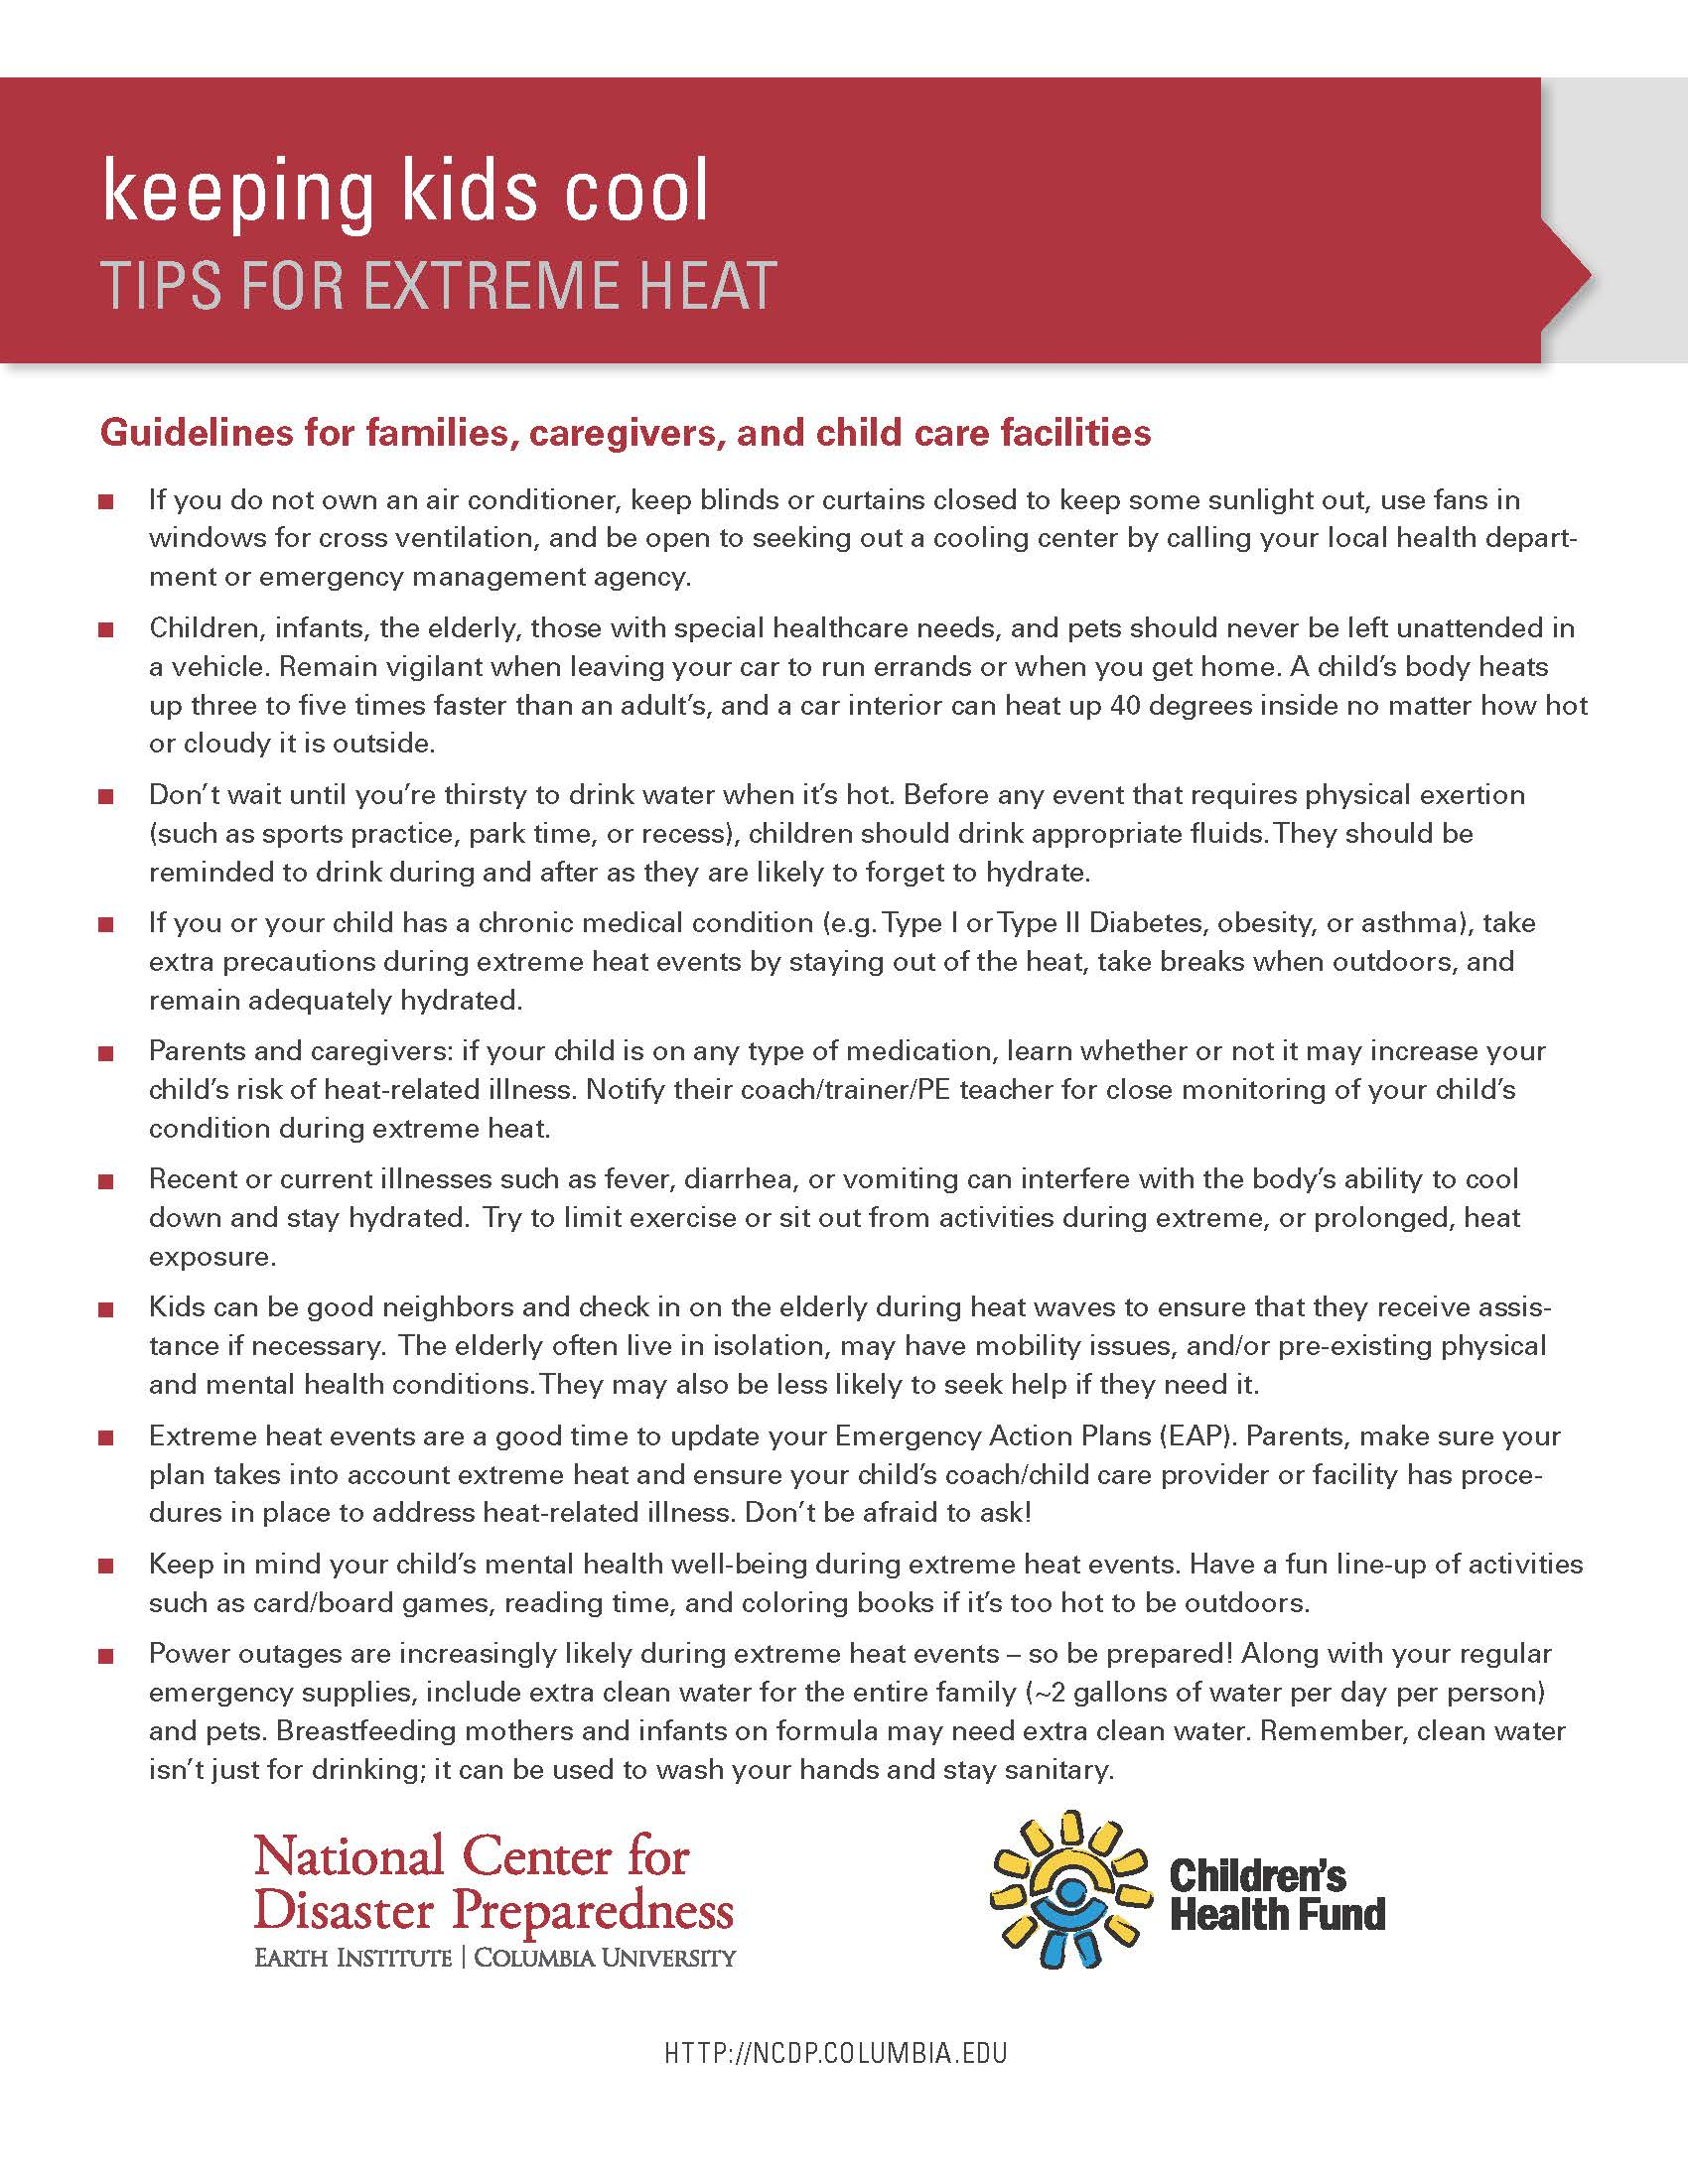 Keeping Kids Cool: Tips for Extreme Heat